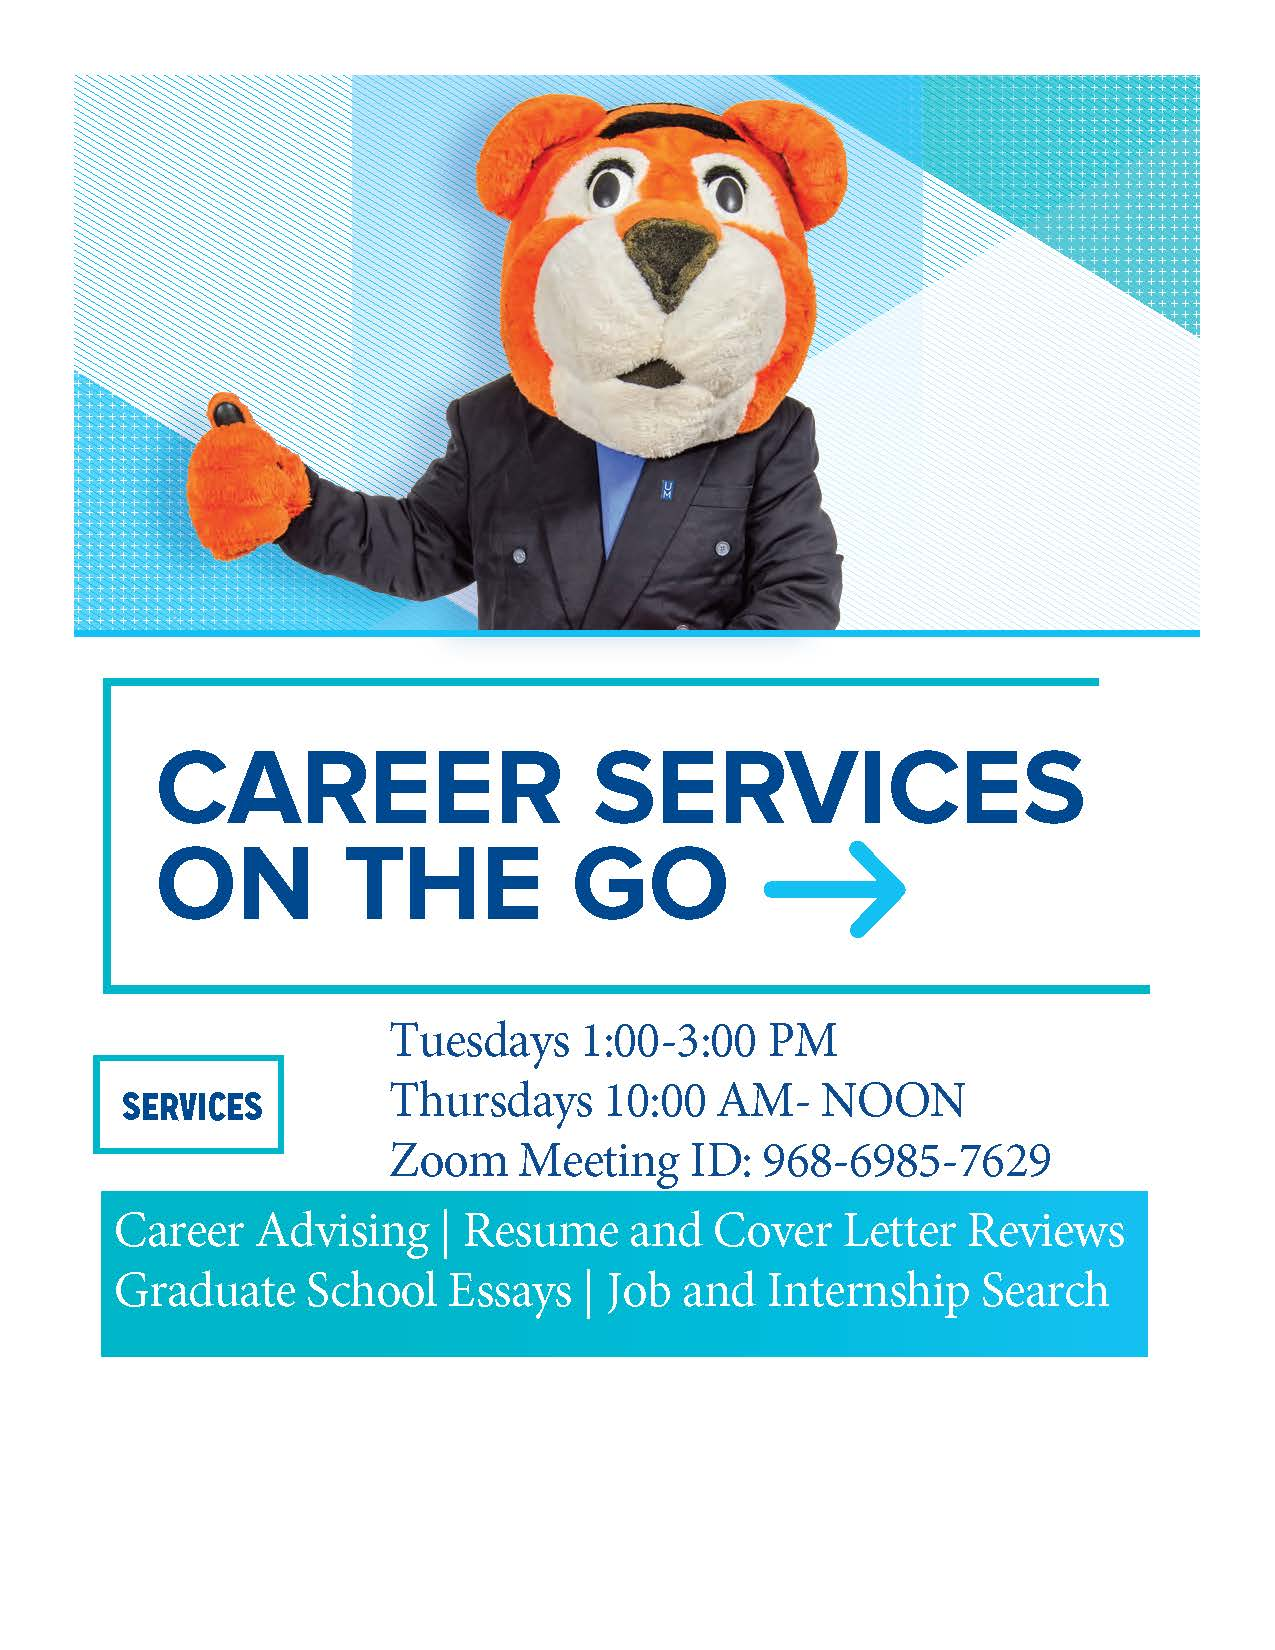 Career Services on the go advertisement